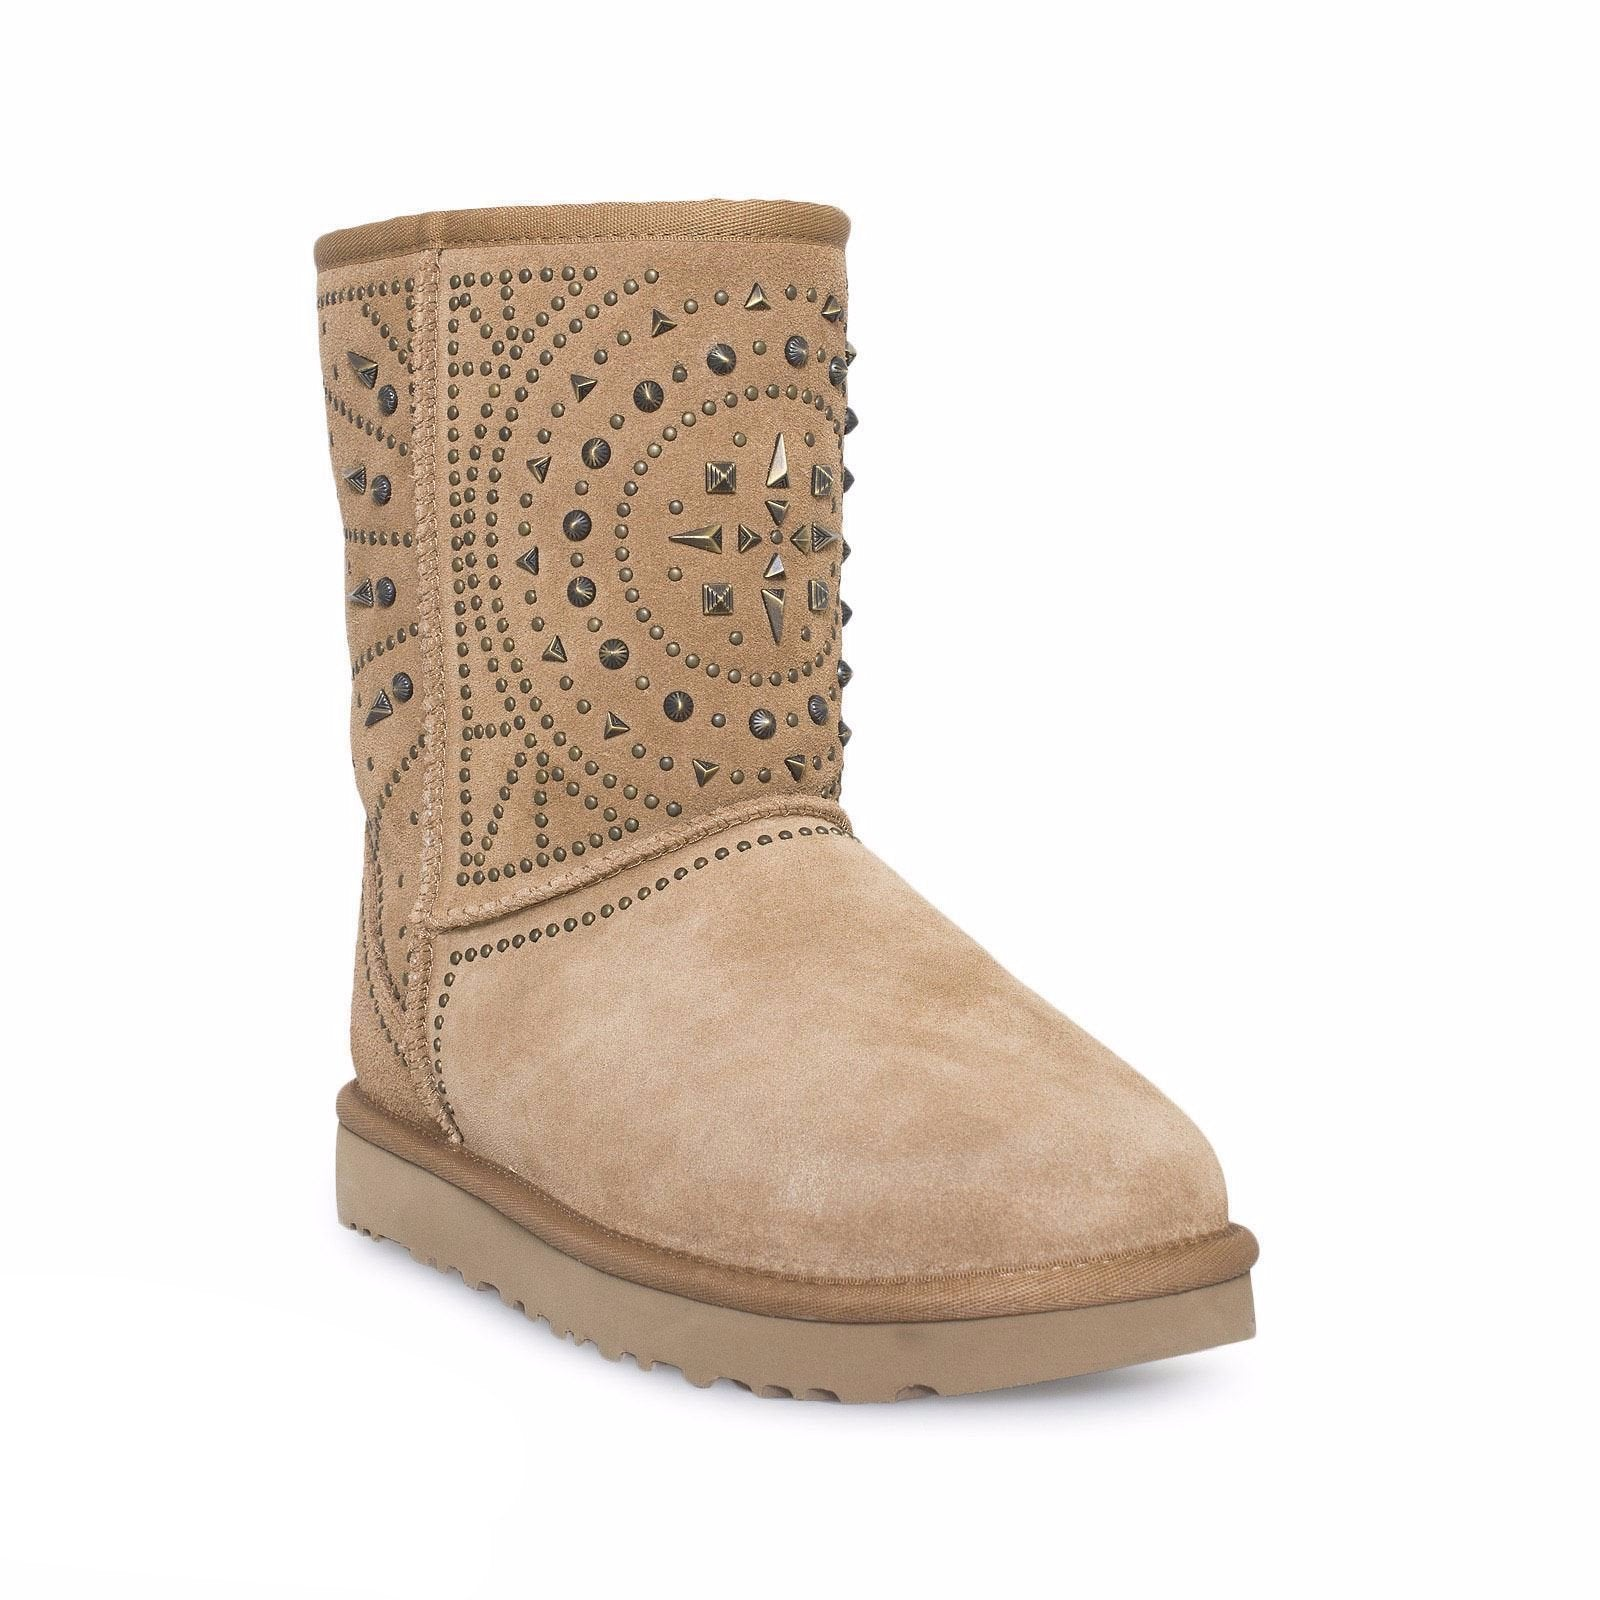 UGG Fiore Deco Studs Chestnut Boots